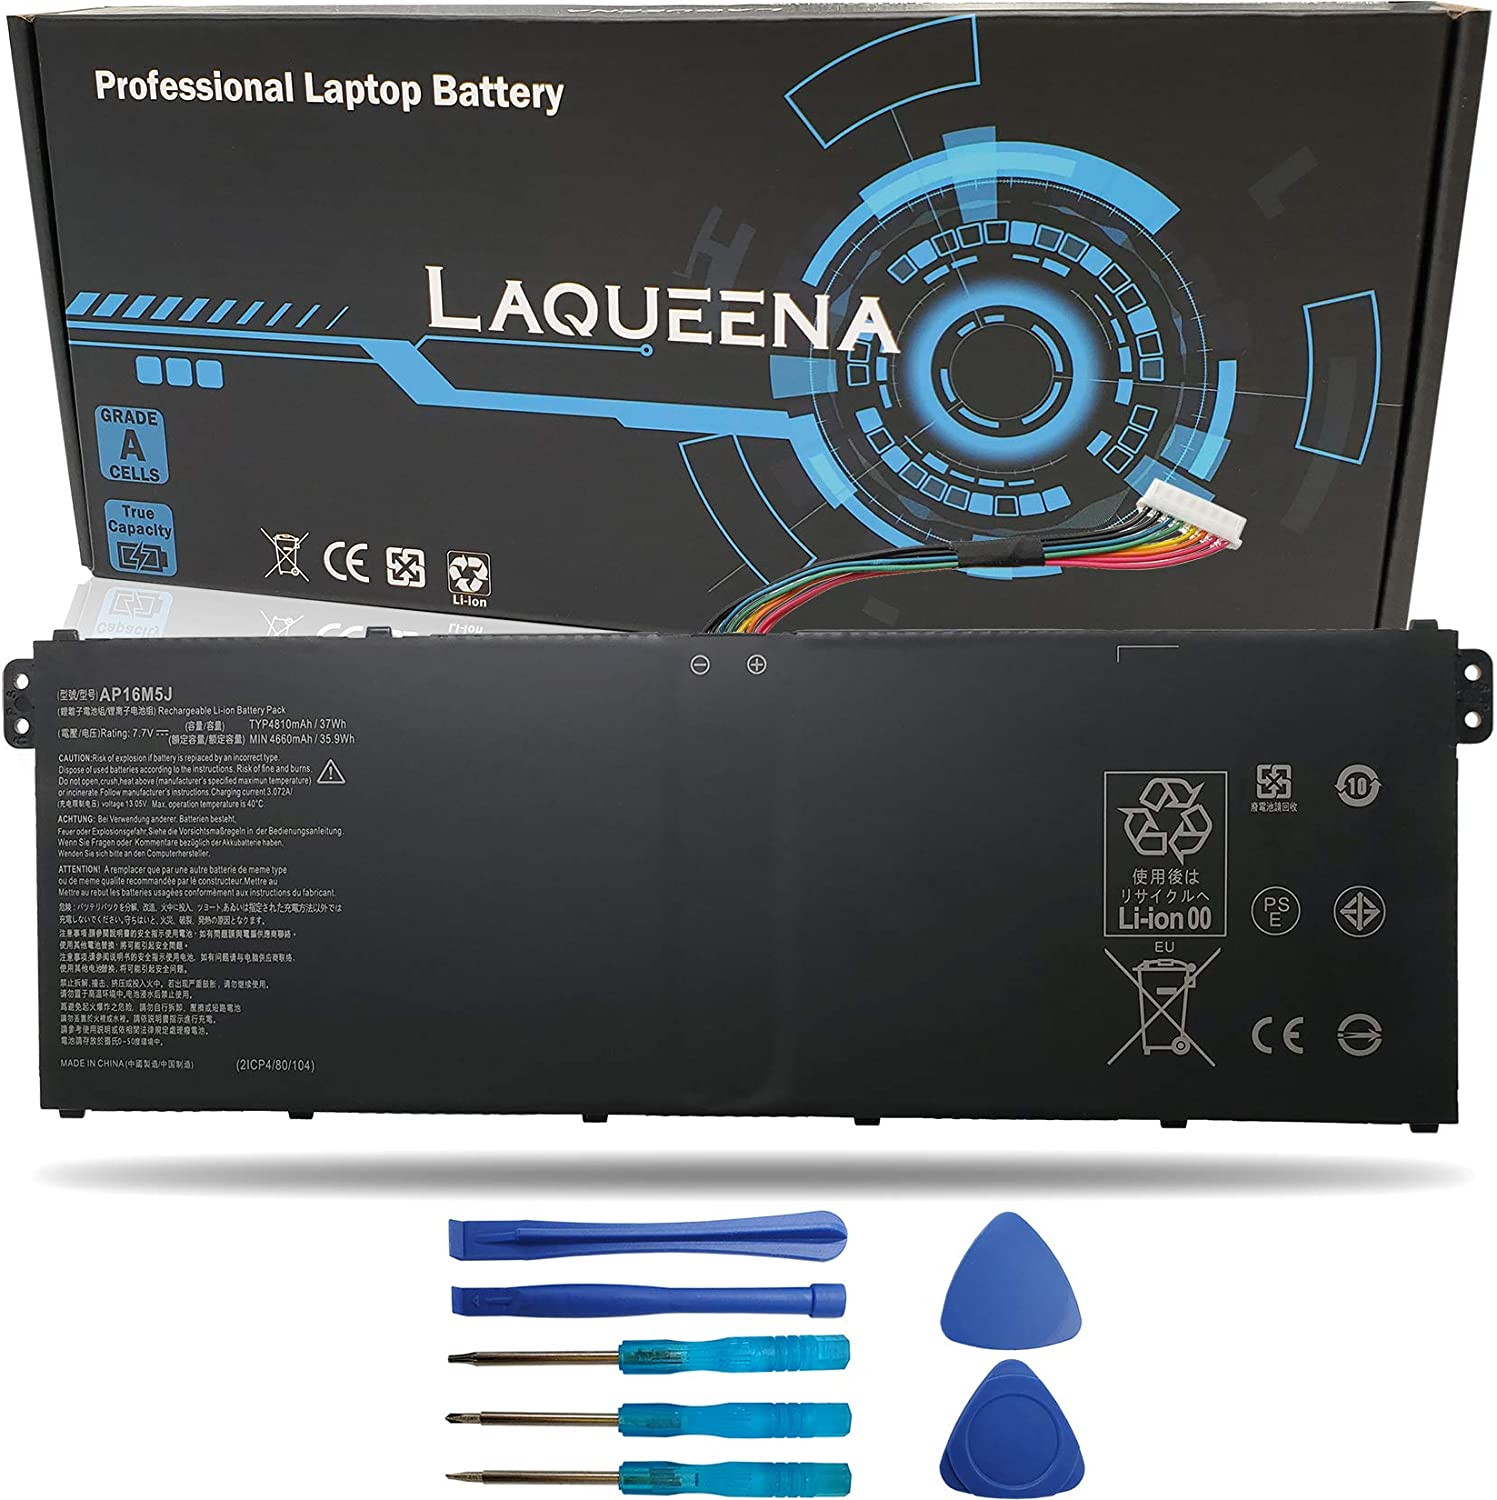 Laqueena AP16M5J Laptop Replacement Battery for Acer Aspire 1 A114-31 A114-31-C4HH A114-31-C5GM 3 A314-31 A315-21 A315-51 5 A515-51 A515-51-75UY ES1-523 Series KT.00205.004 7.7V 37WH 4-Cell